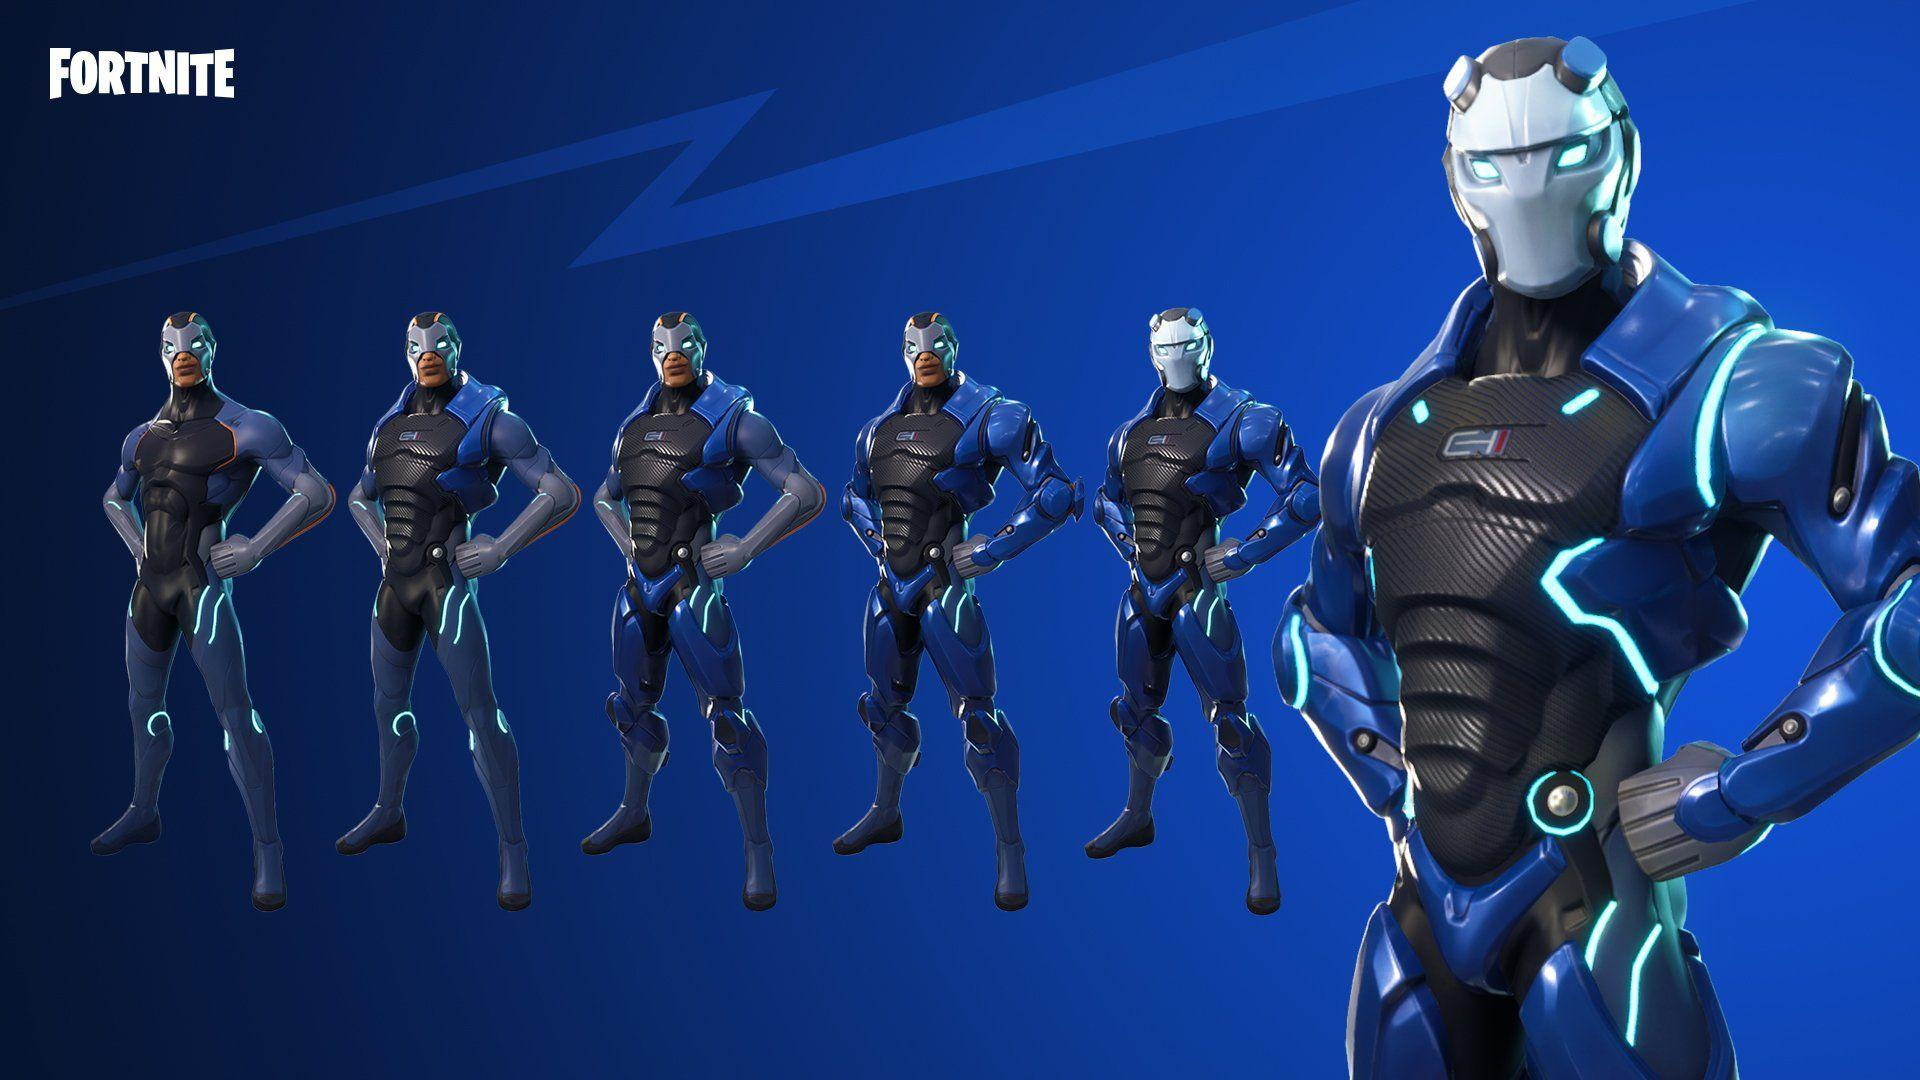 Carbide Fortnite Wallpapers Wallpaper Cave